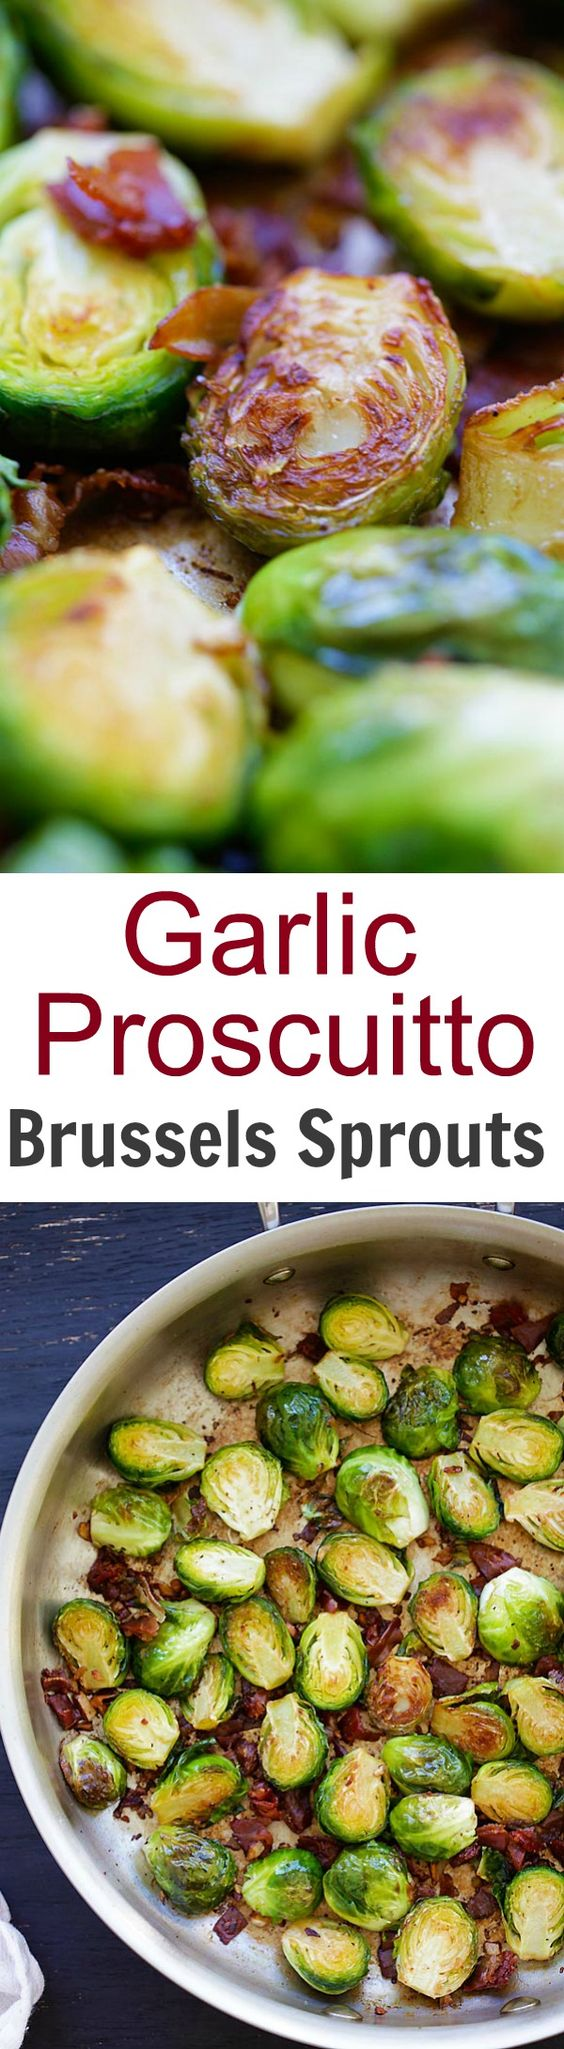 Brussel Sprout Recipes With Bacon Ovens Garlic